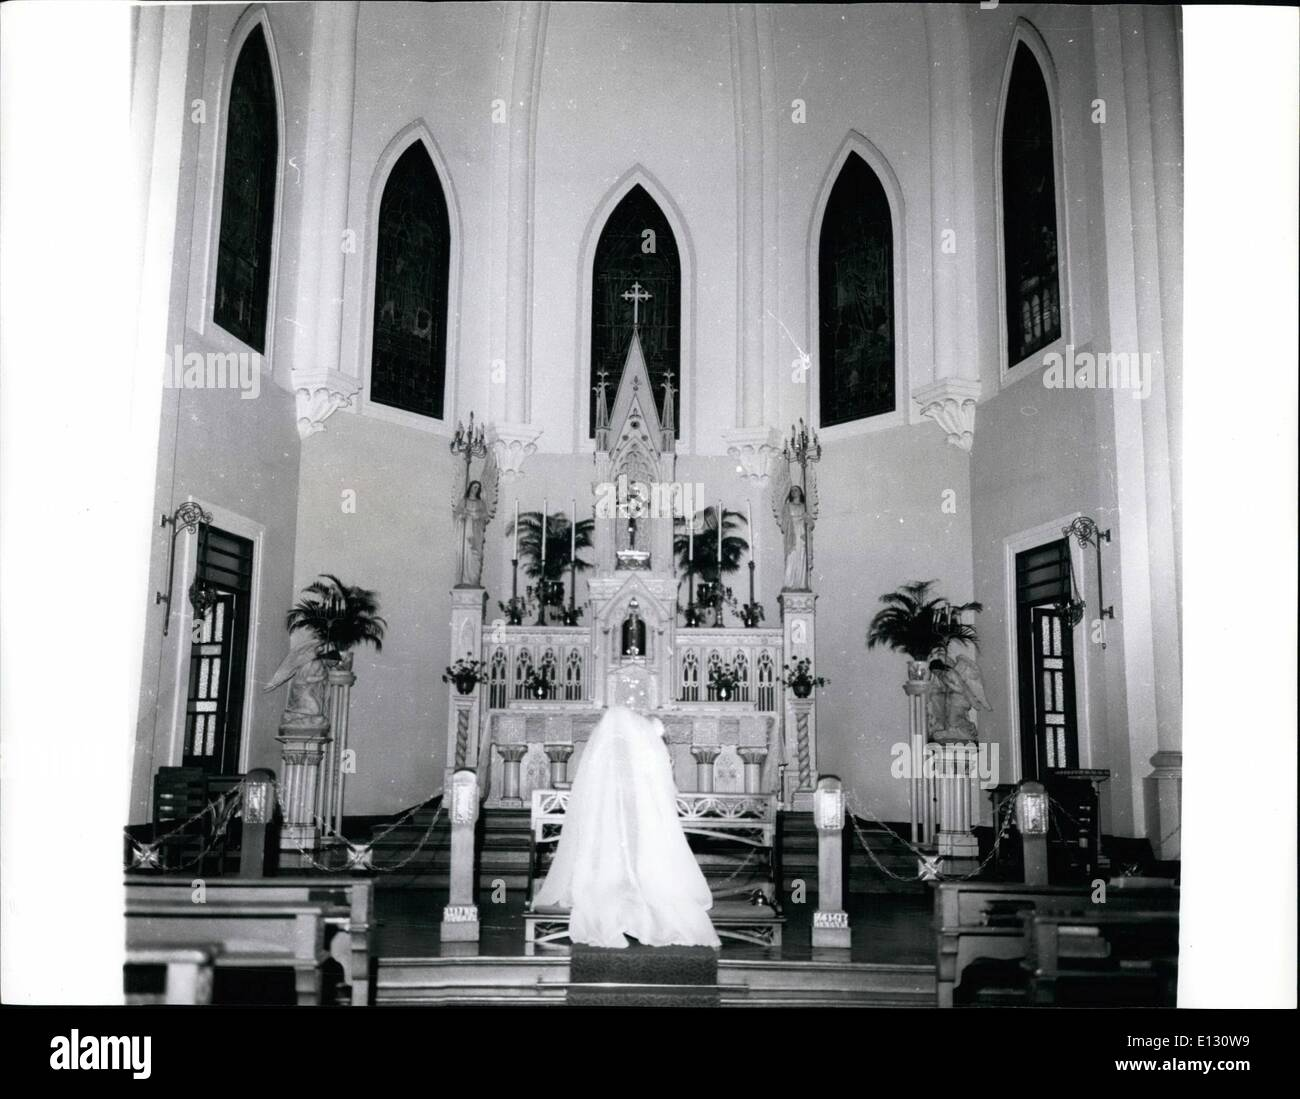 Feb. 26, 2012 - The School Chapel attached to the Girls' Convent School in Macao. APRE - Stock Image